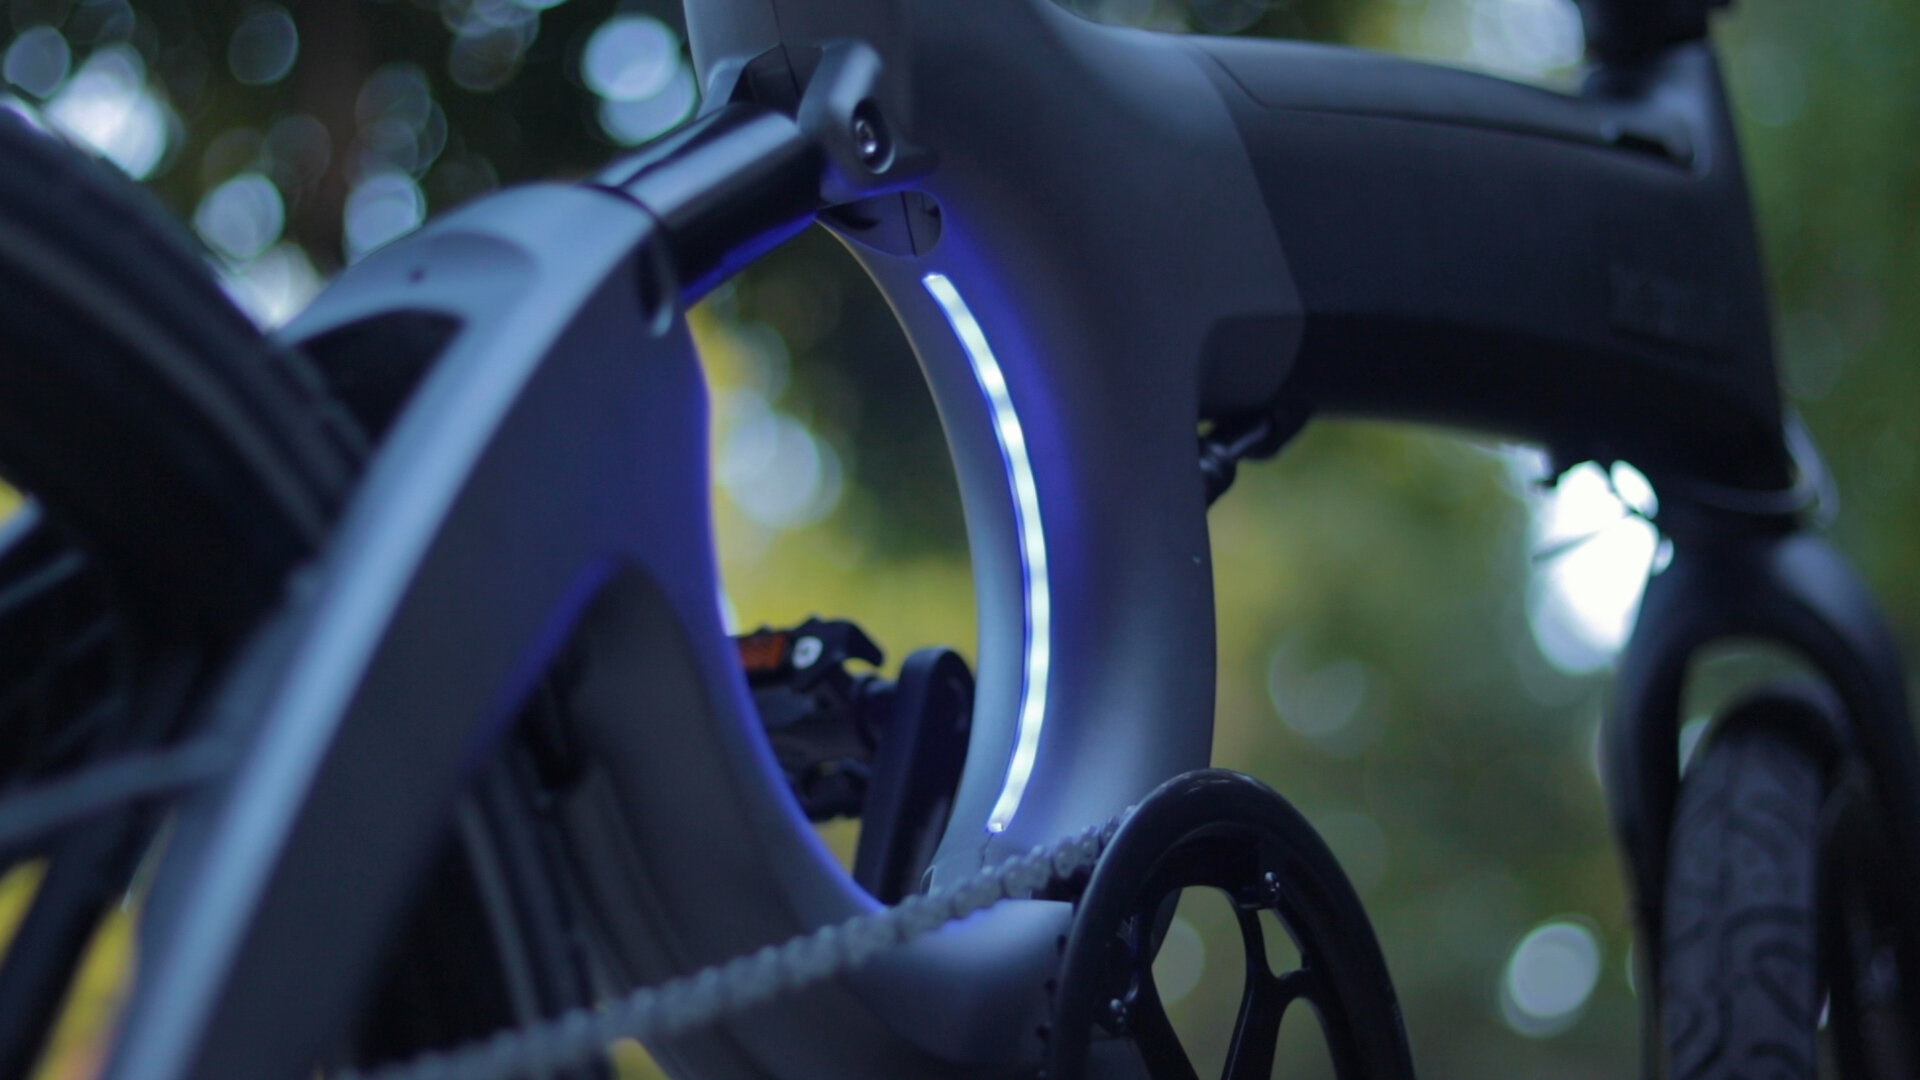 flowdot-electric-bike-review-2019-frame-ligiht-2.jpg